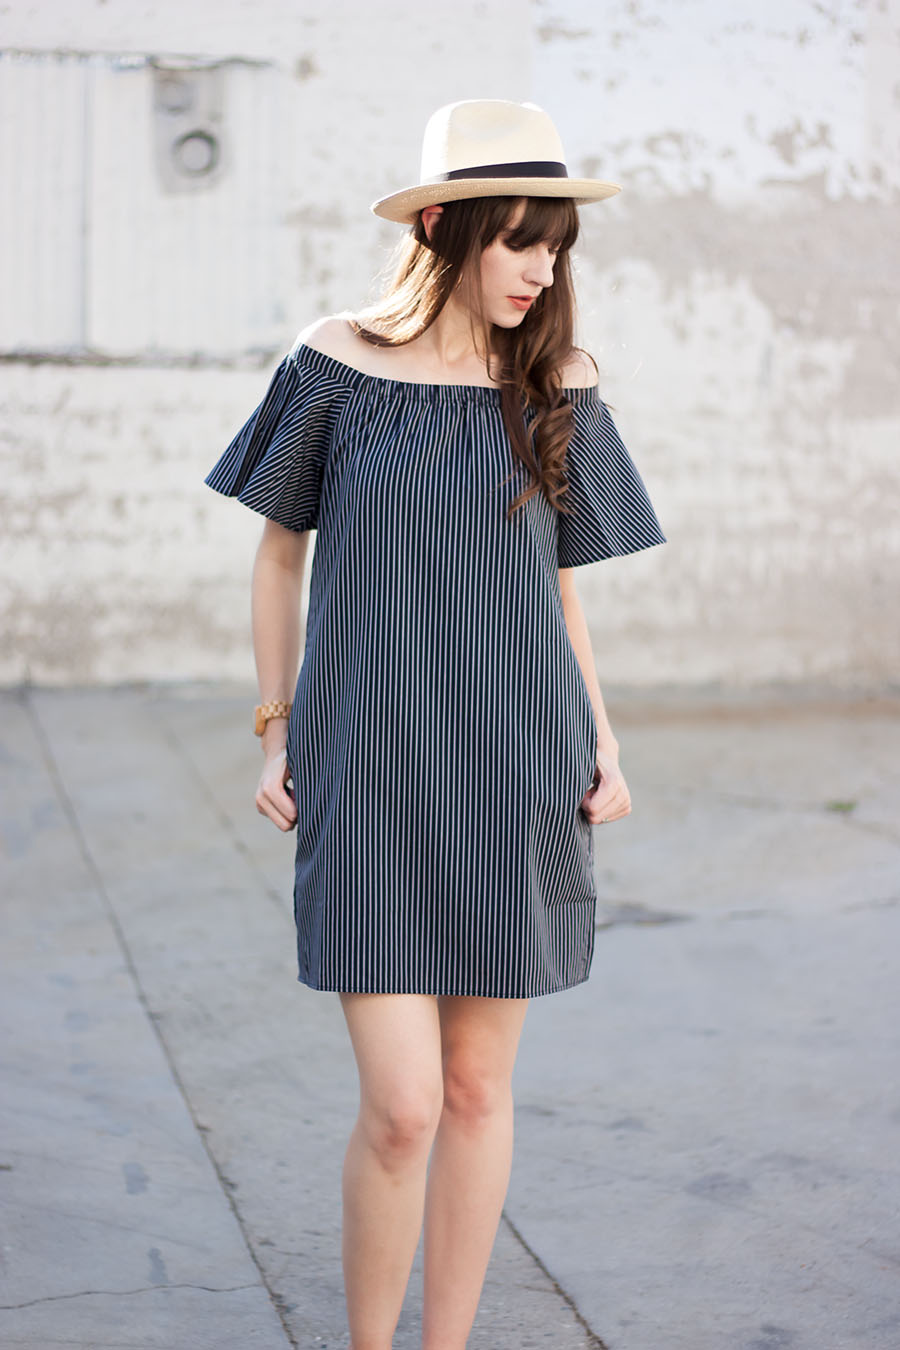 Banana Republic Flutter Sleeve Dress, Navy Striped Dress, Pananma Hat